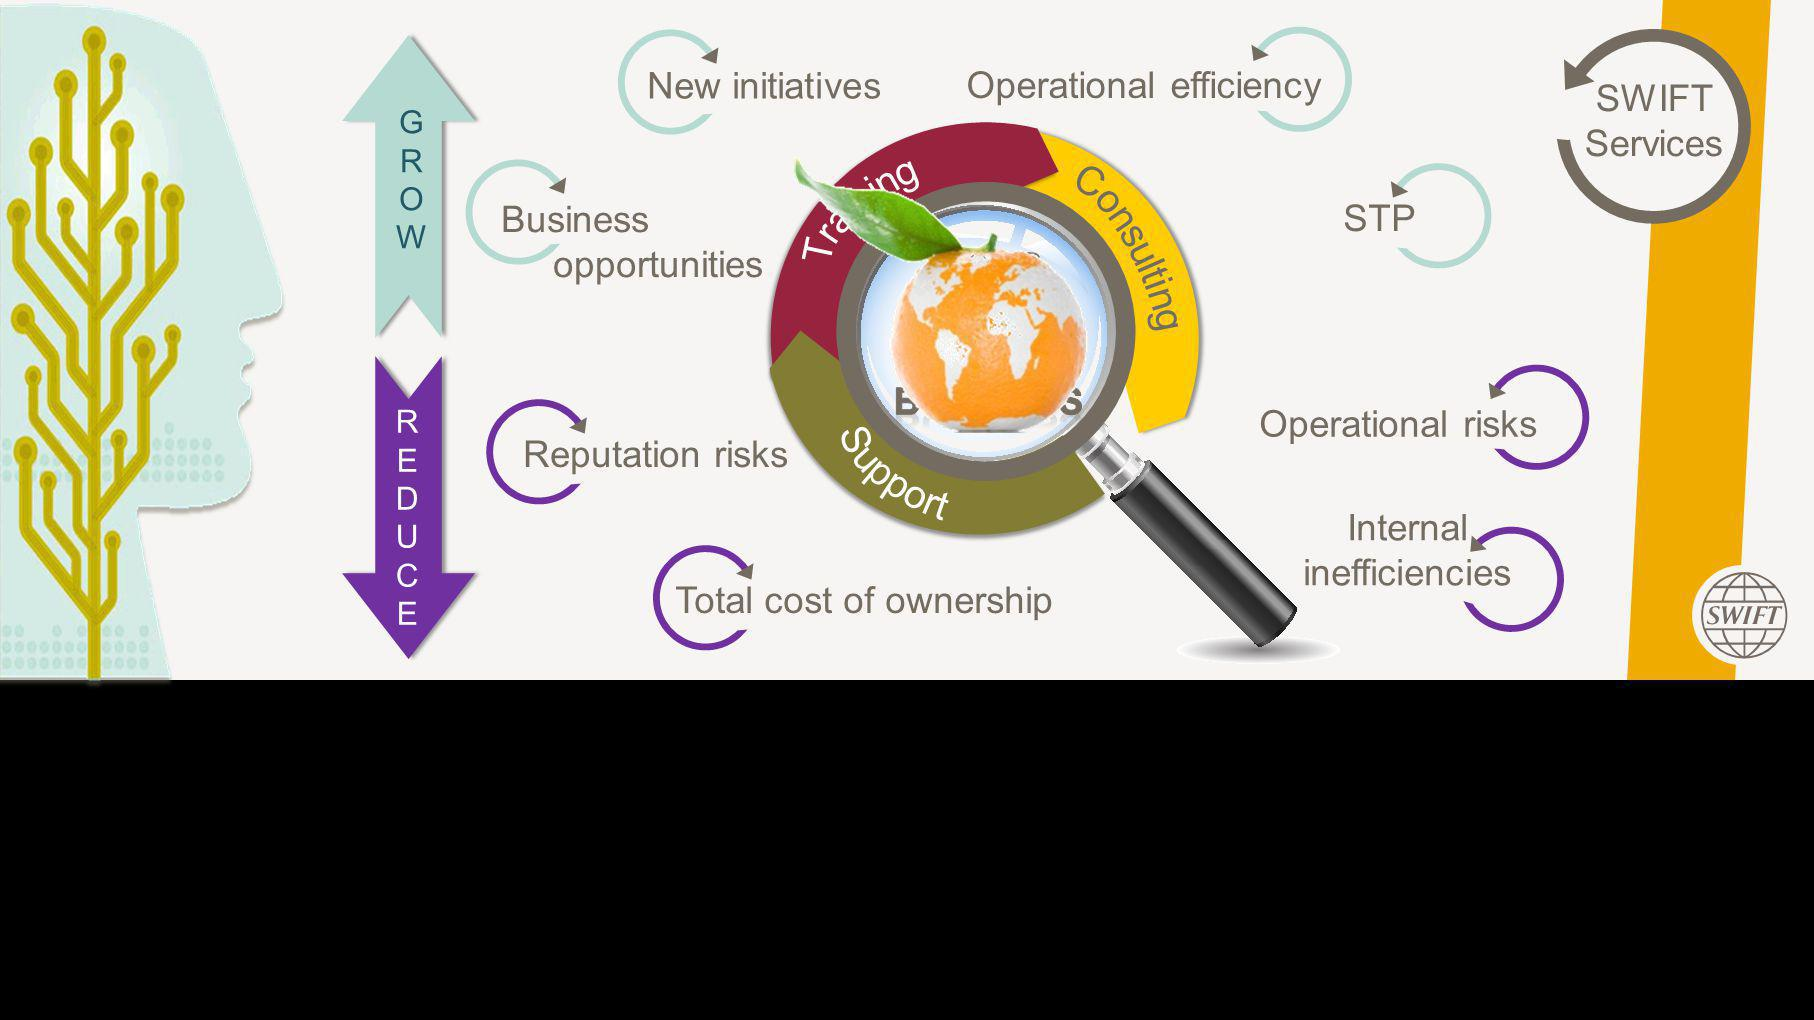 This Area Will Not Be Seen SWIFT Services GROWGROW REDUCEREDUCE Business opportunities New initiatives Operational efficiency STP Reputation risks Total cost of ownership Operational risks Internal inefficiencies